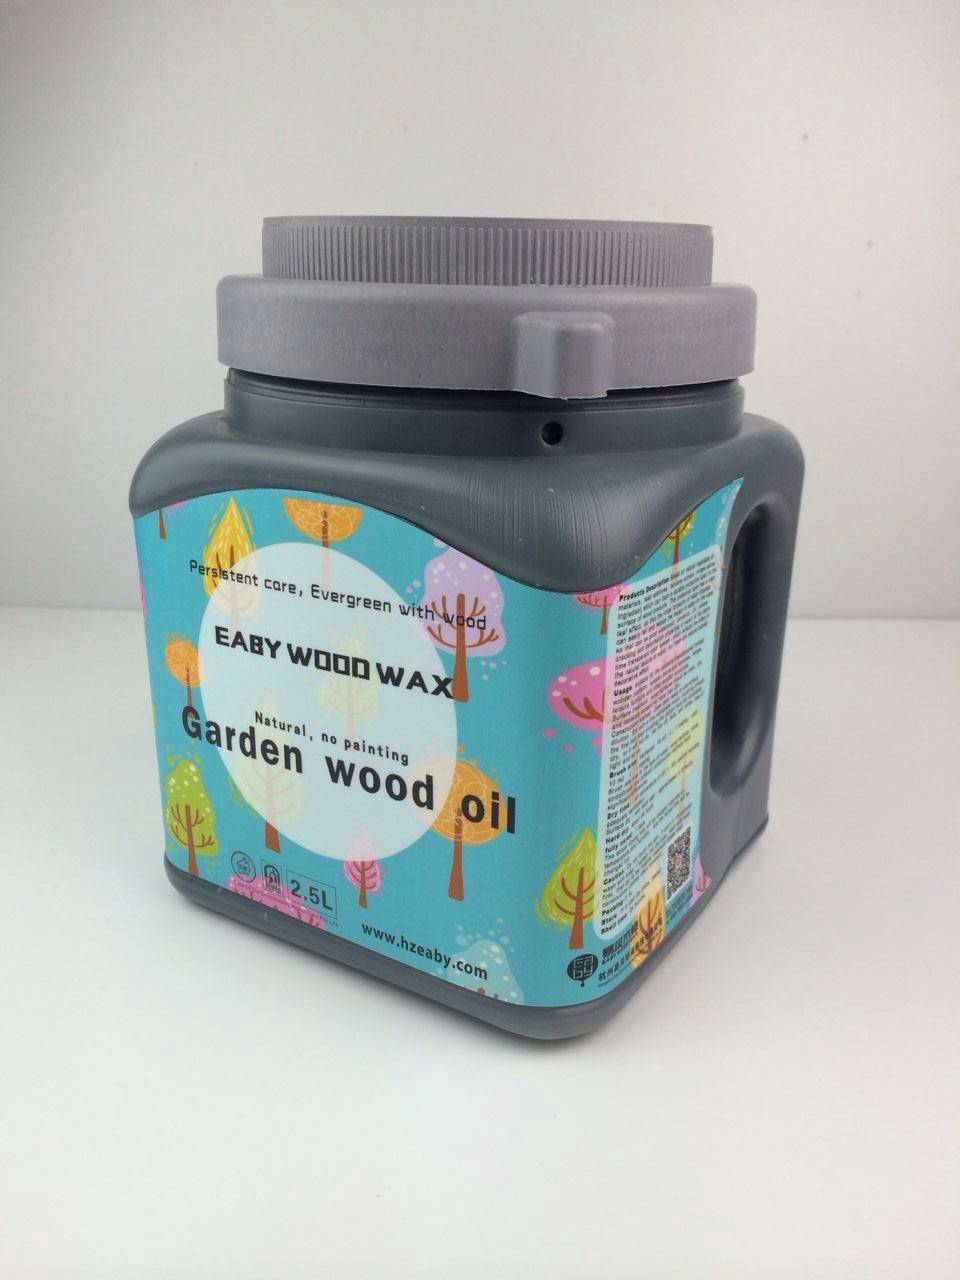 EABY weathering wood wax oil protecting wood products